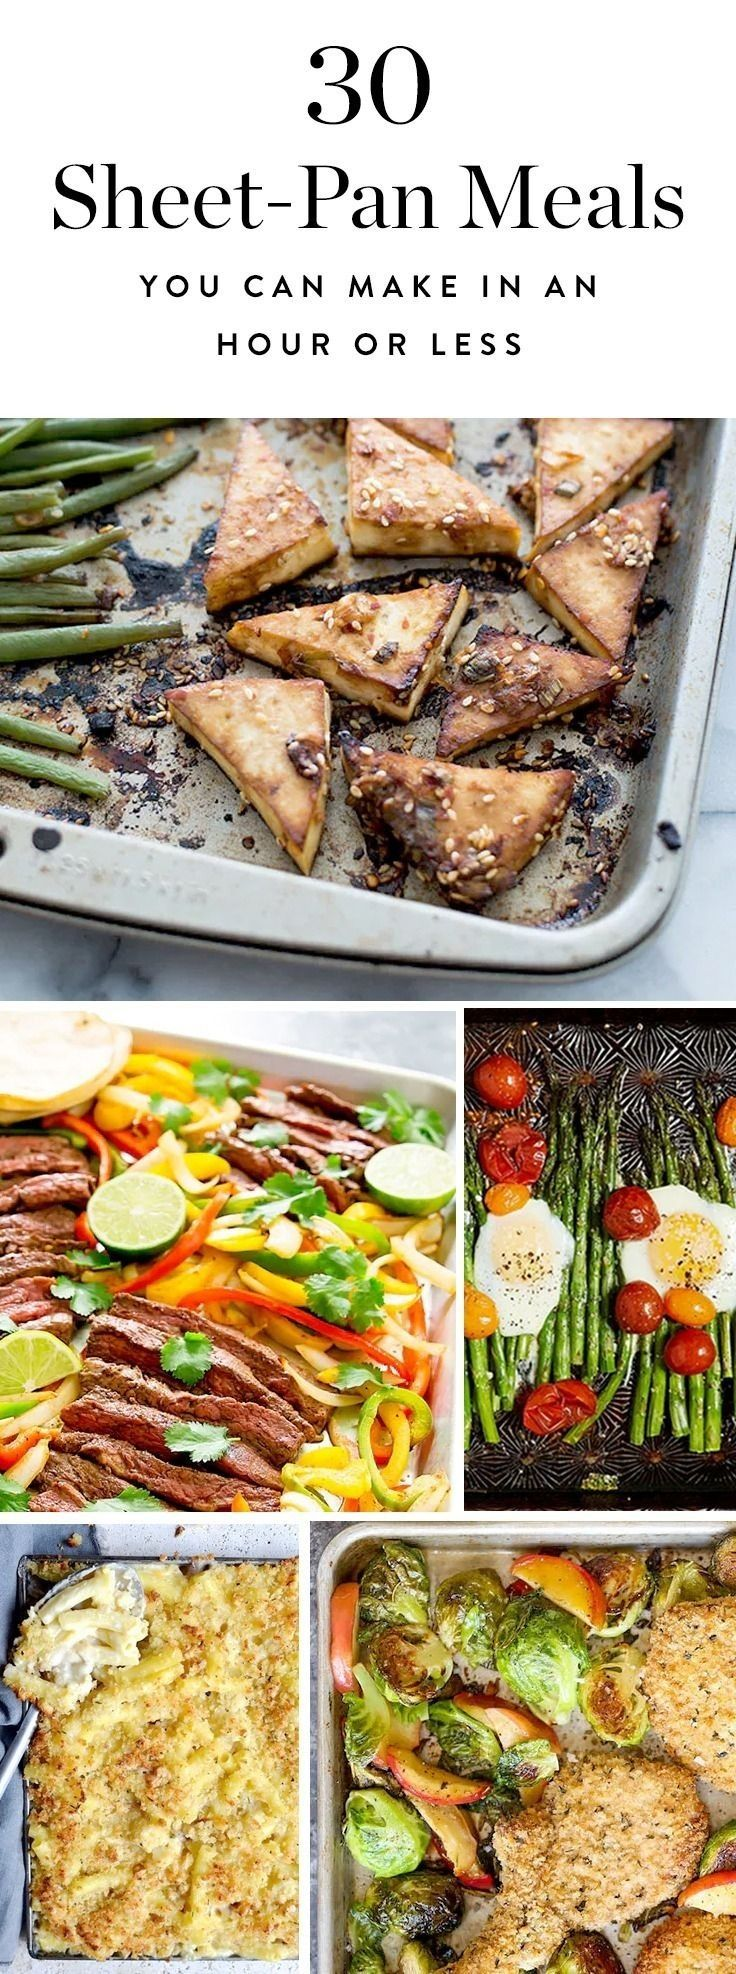 Here are 30 delicious sheet-pan meals you can make in under an hour. (Best of all, there's only one dish to wash.)